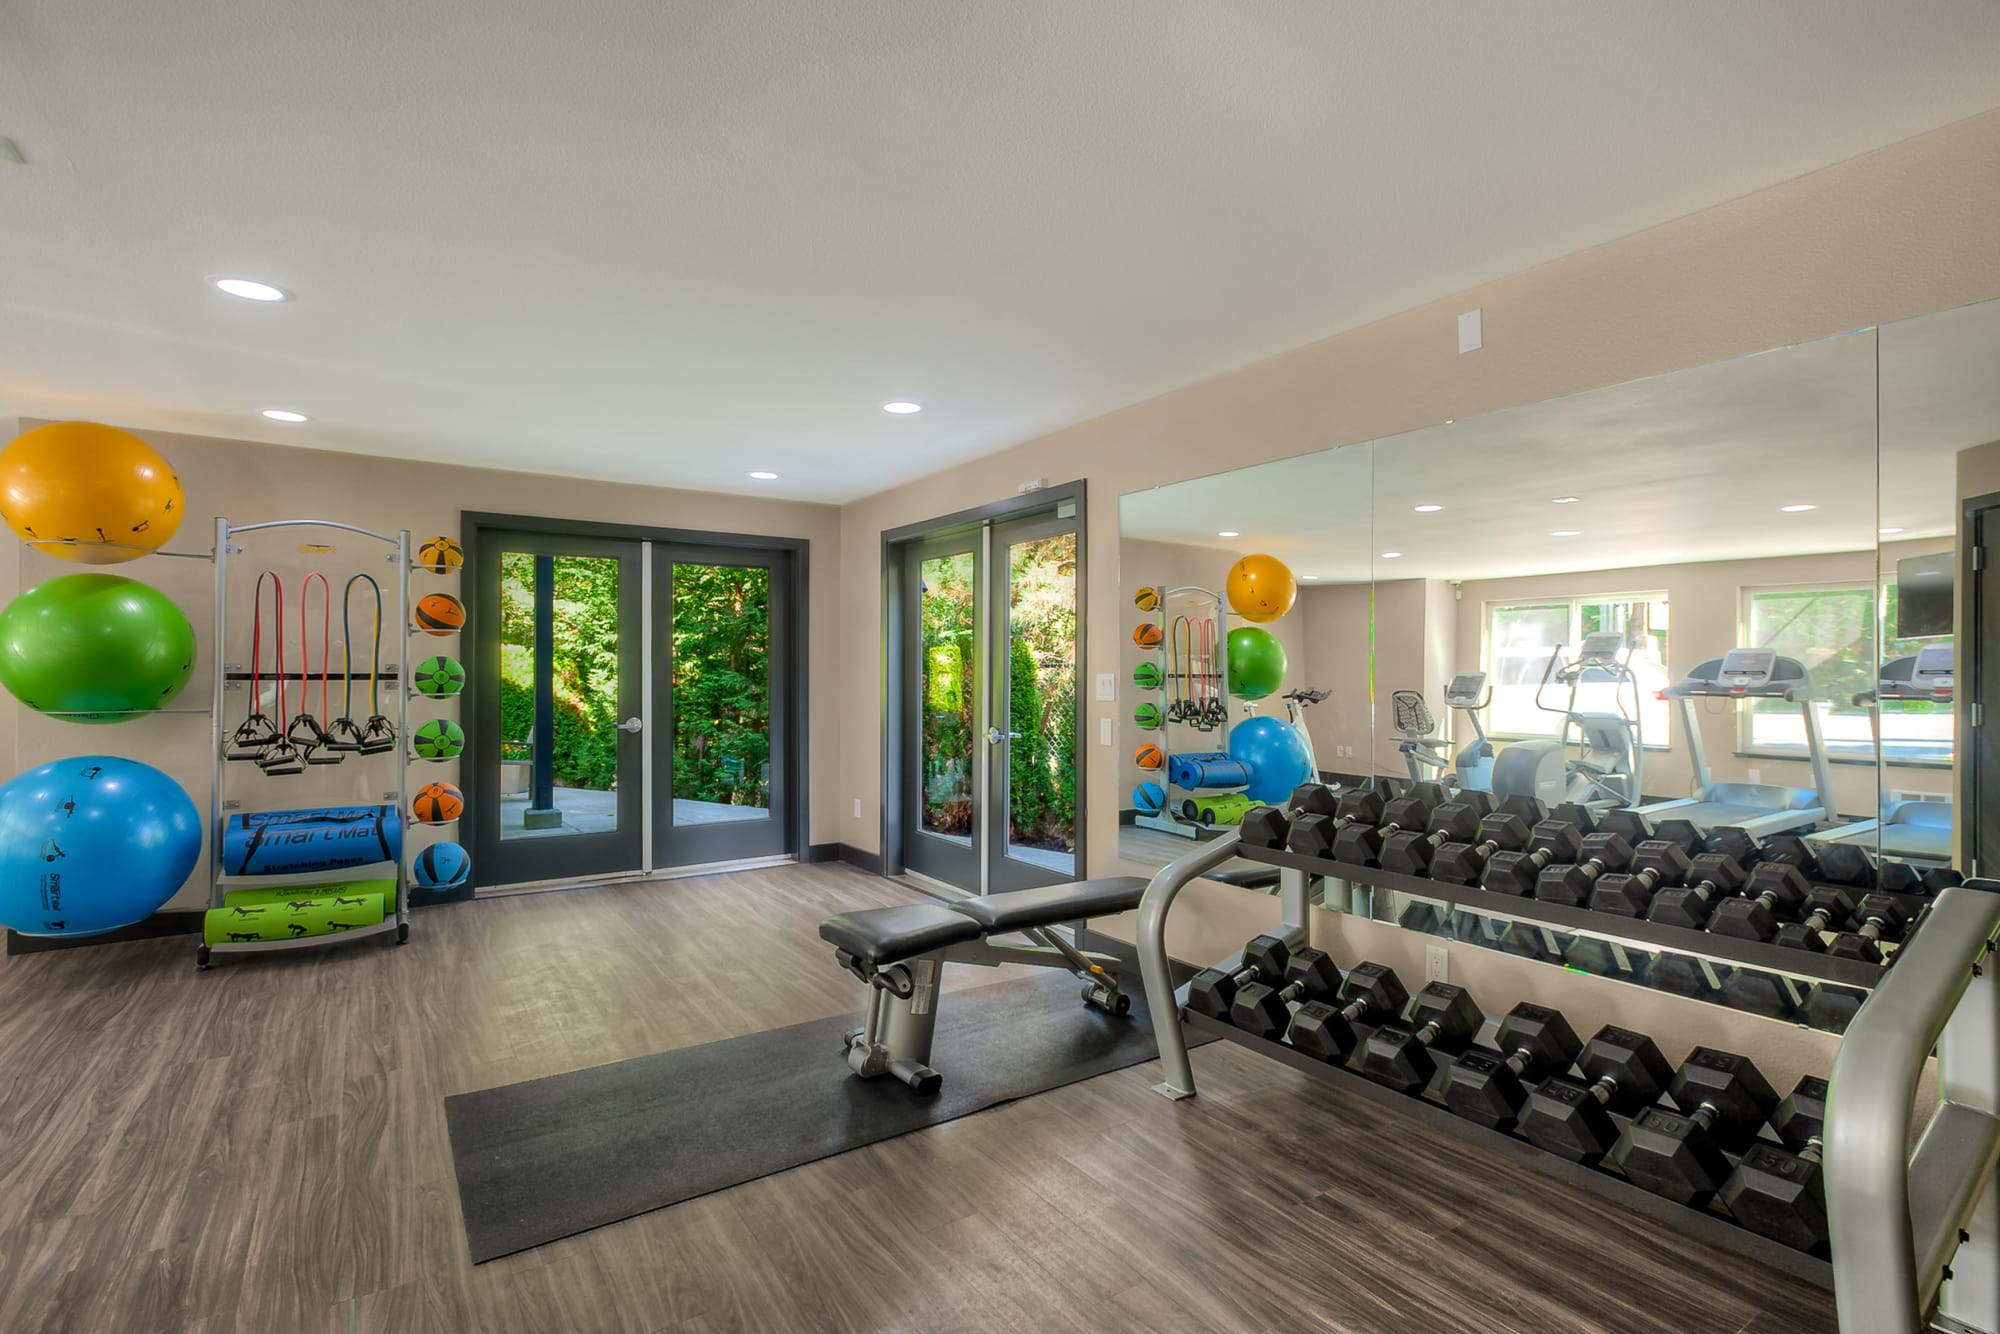 Newly renovated fitness center with free weights at Karbon Apartments in Newcastle, Washington